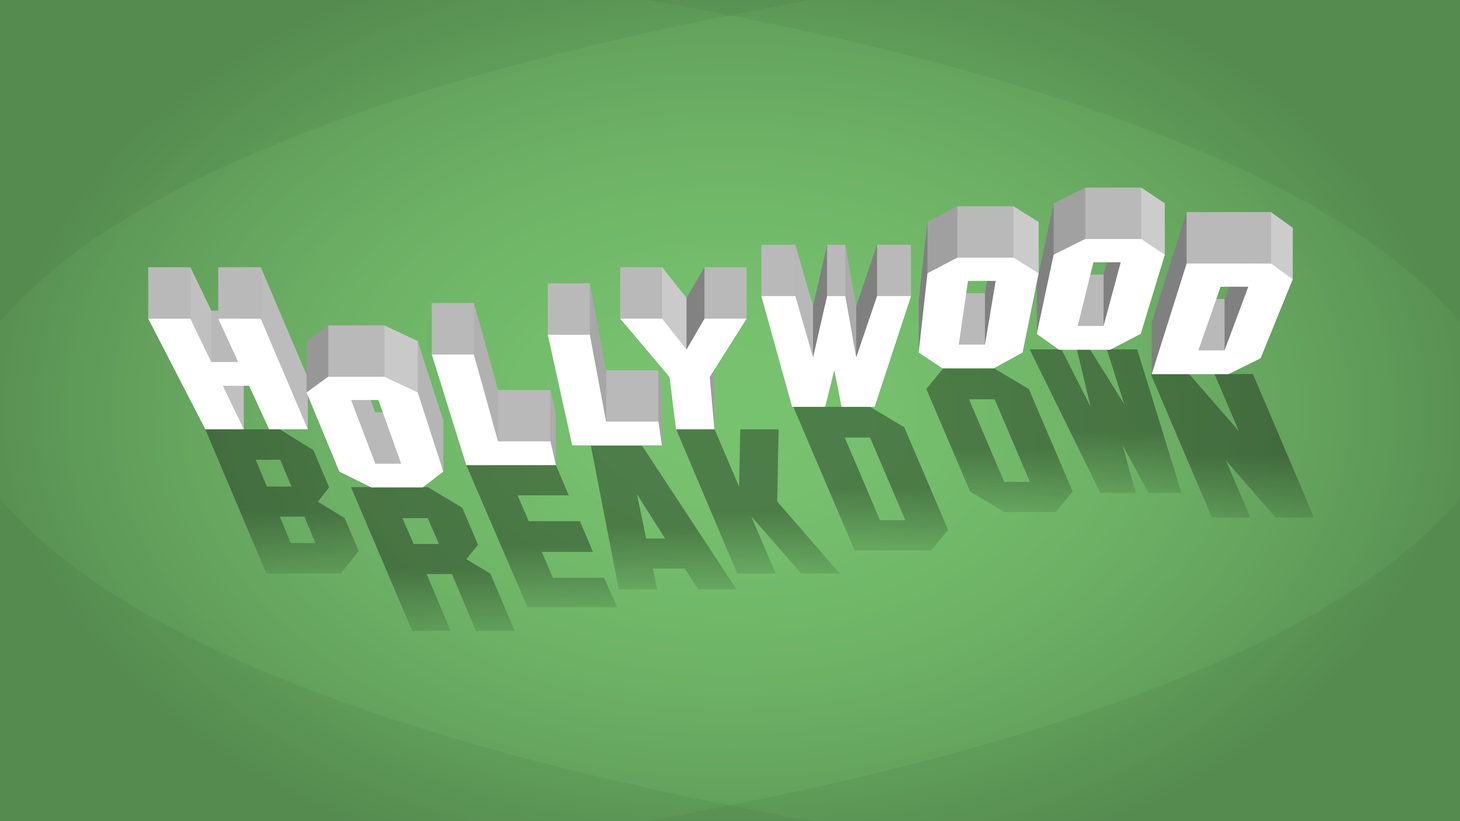 Now's the time of year when Hollywood is abuzz with awards campaigning,  so Kim and John take a look at what films and performances seem to be  getting the most traction.